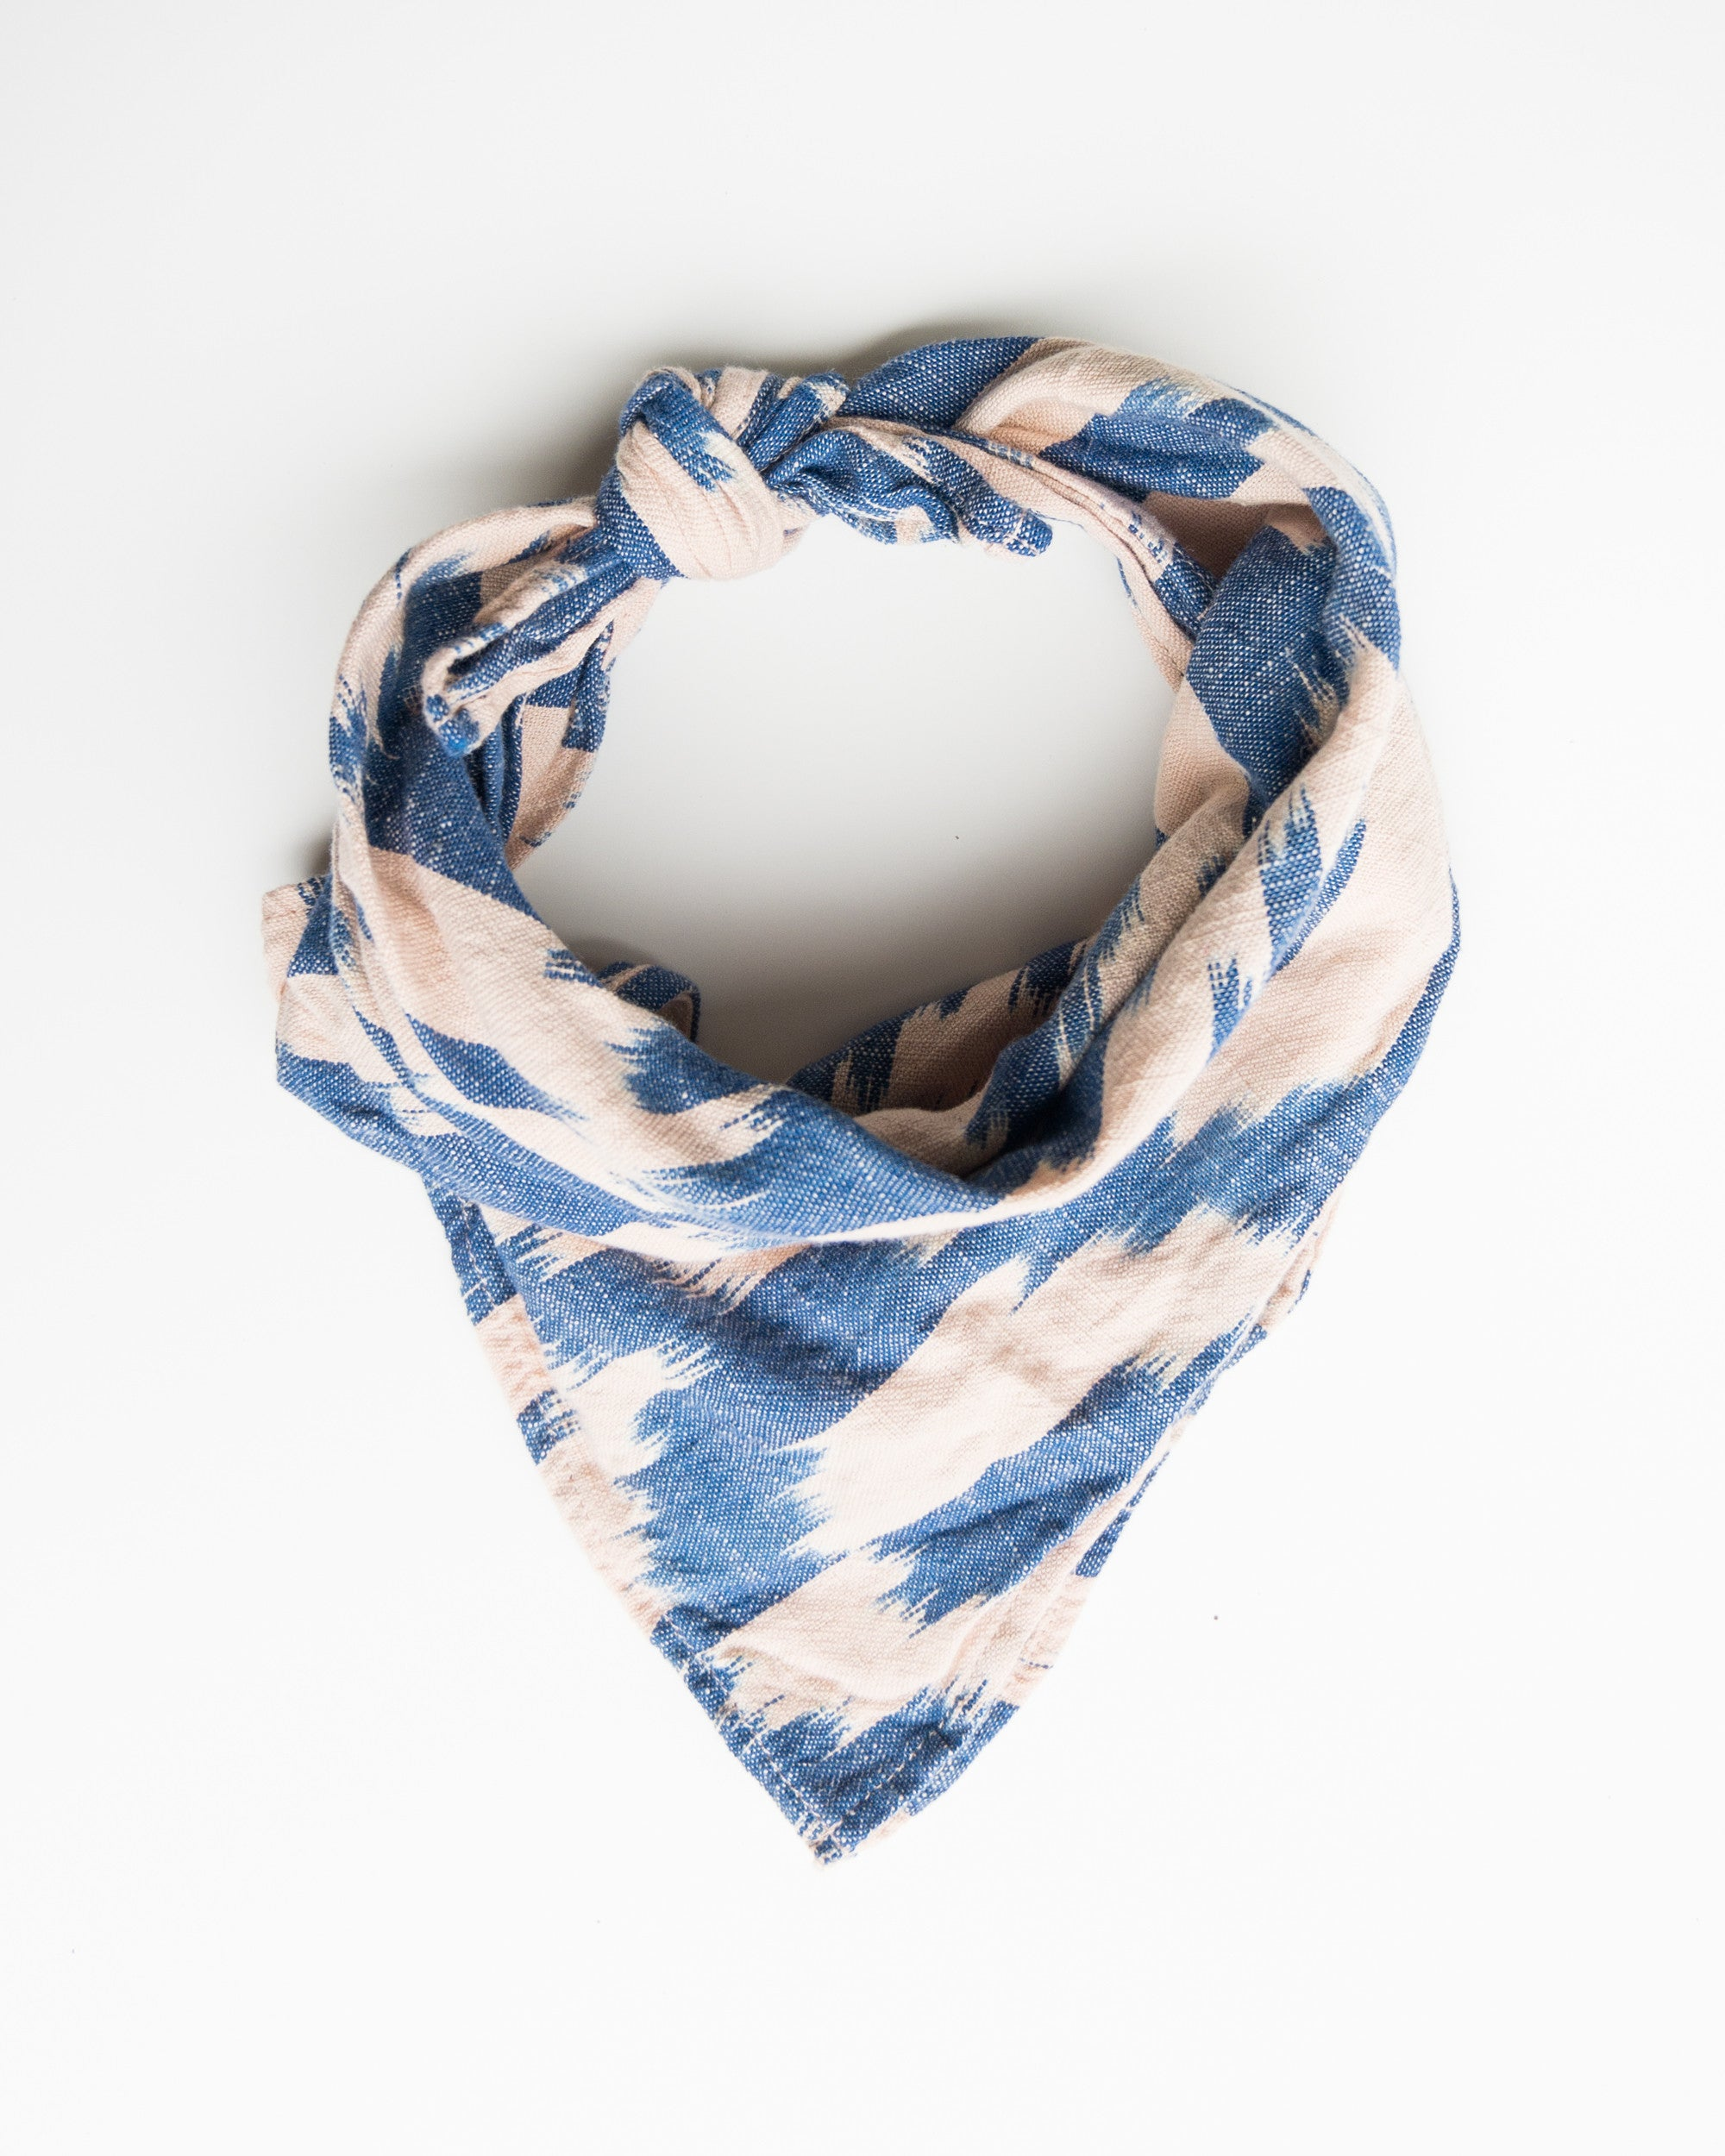 esby-apparel-womenswear-designed-in-austin-made-in-usa-ikat-bandana-blush-blue